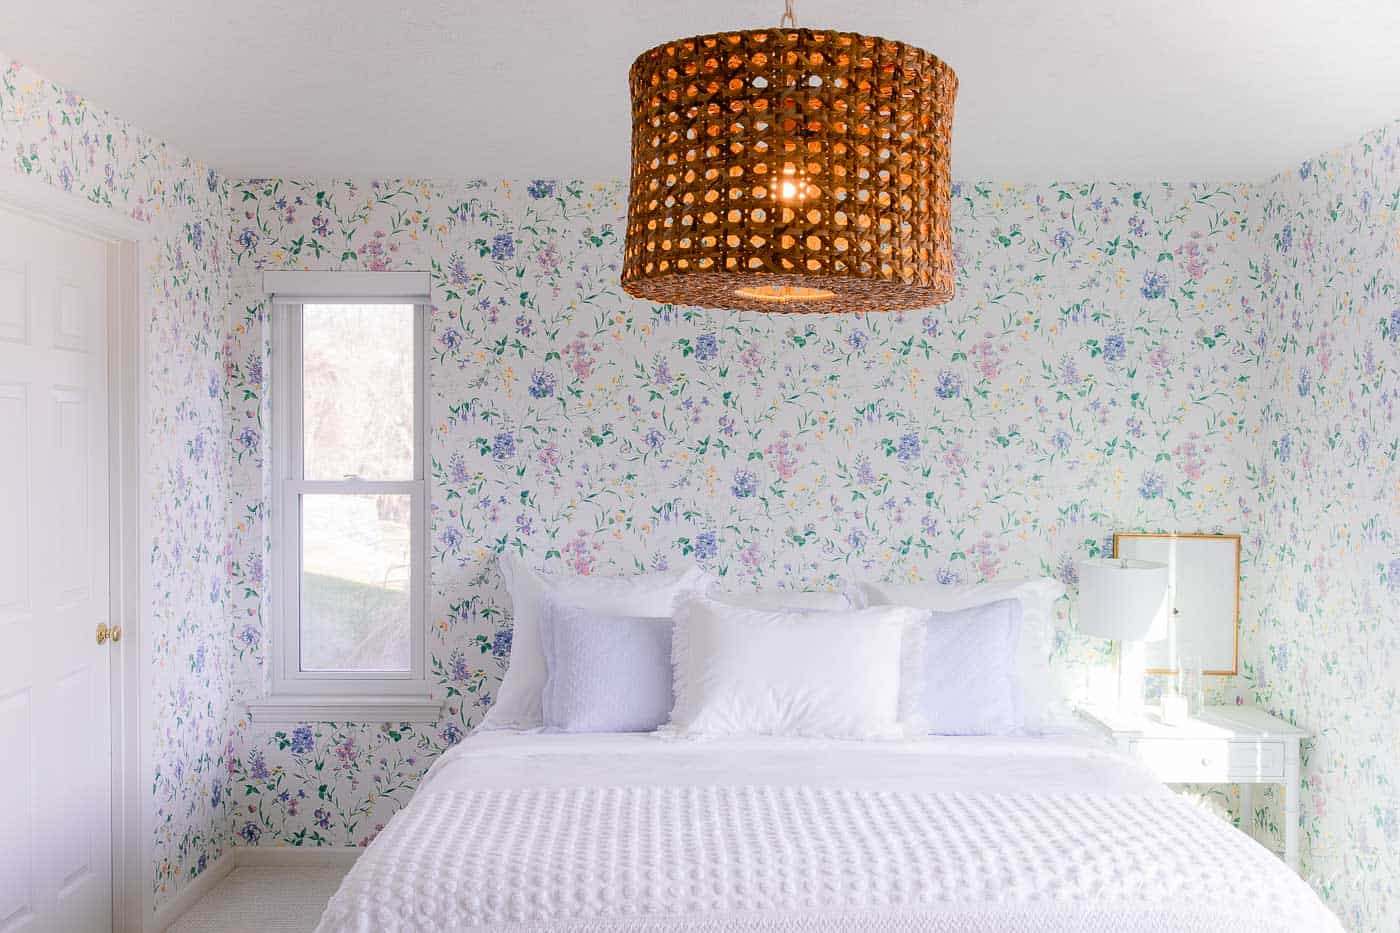 A cottage bedroom with white bedding, floral wallpaper, and a small window with a custom roller shade.